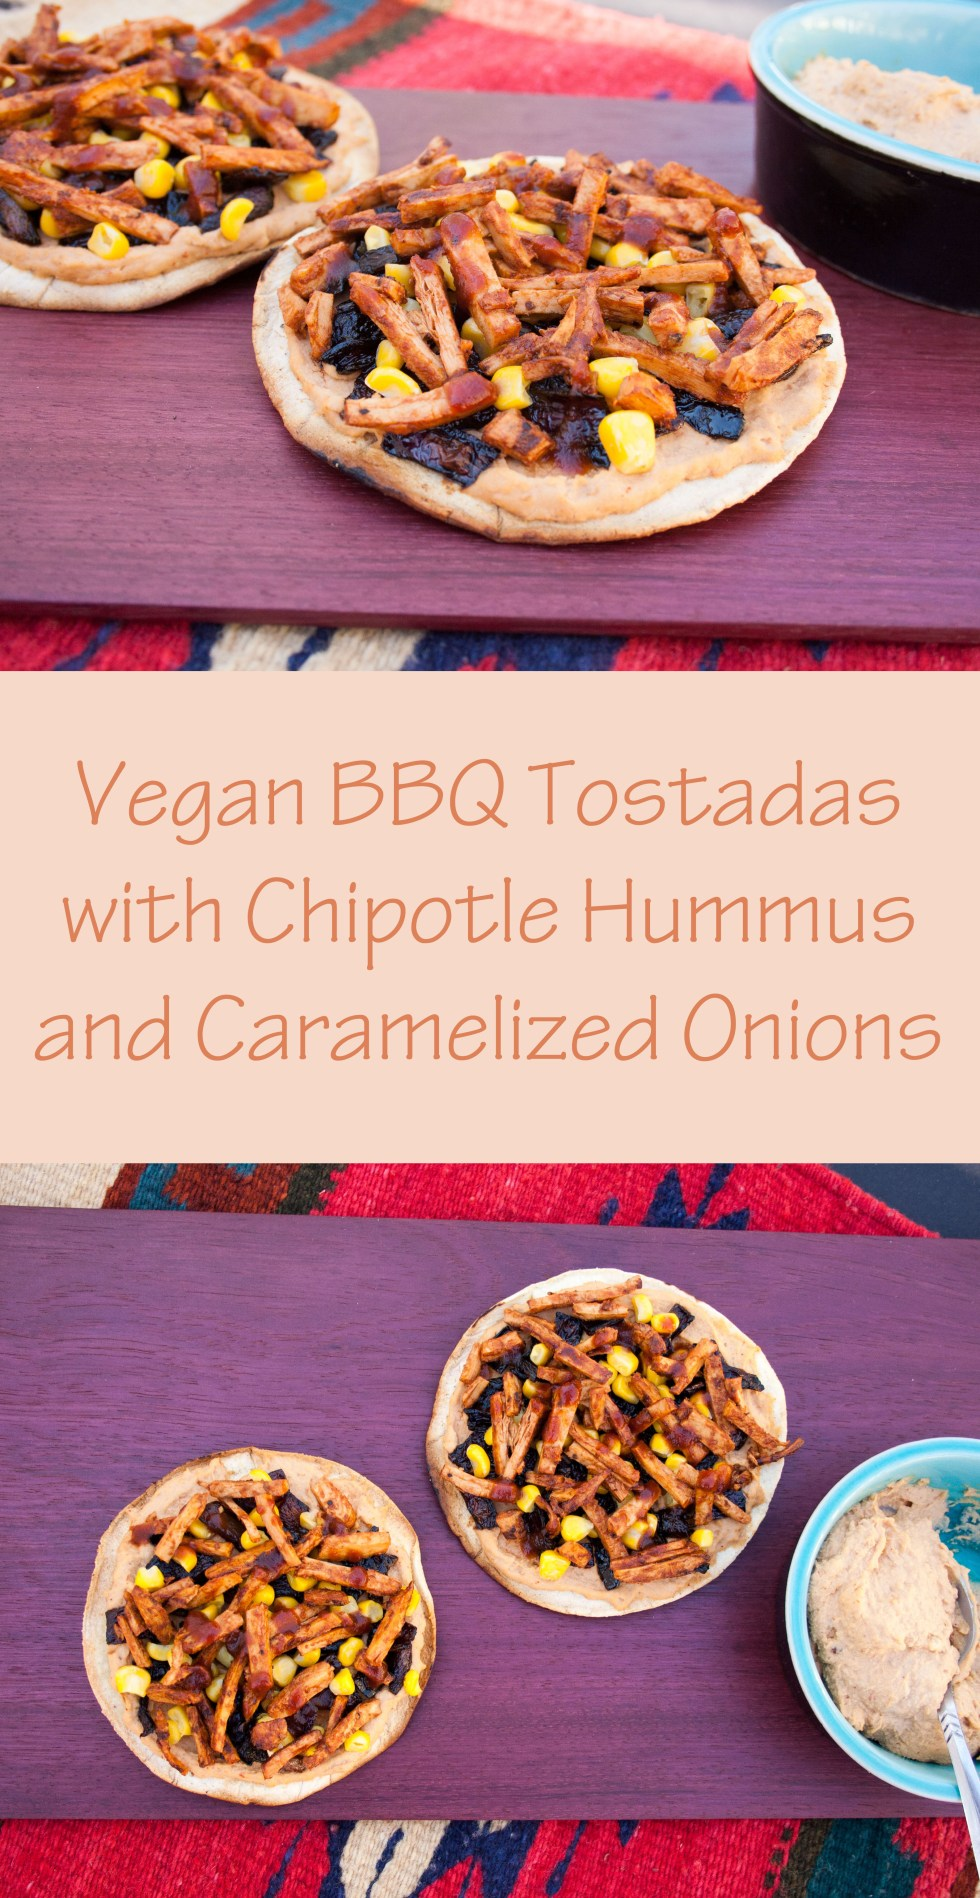 Vegan BBQ Tostadas with Chipotle Hummus and Caramelized Onions - These are a perfect combination of sweet and spicy!